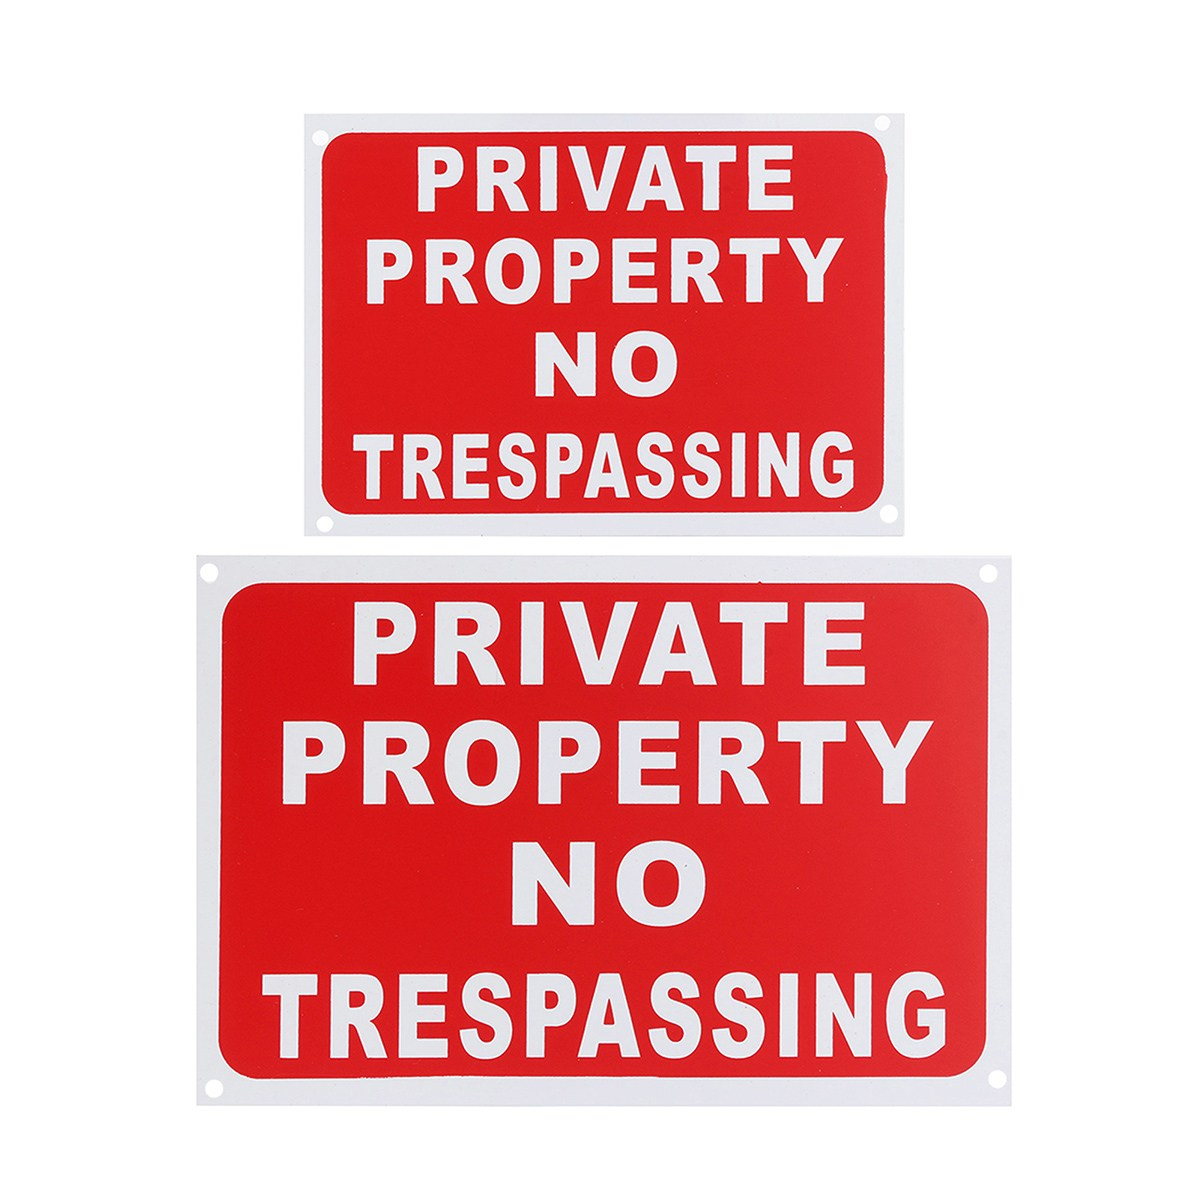 Safurance Private Property No Trespassing Plastic Stickers Security Signs Decal 2 Sizes  Workplace Safety Warning signs